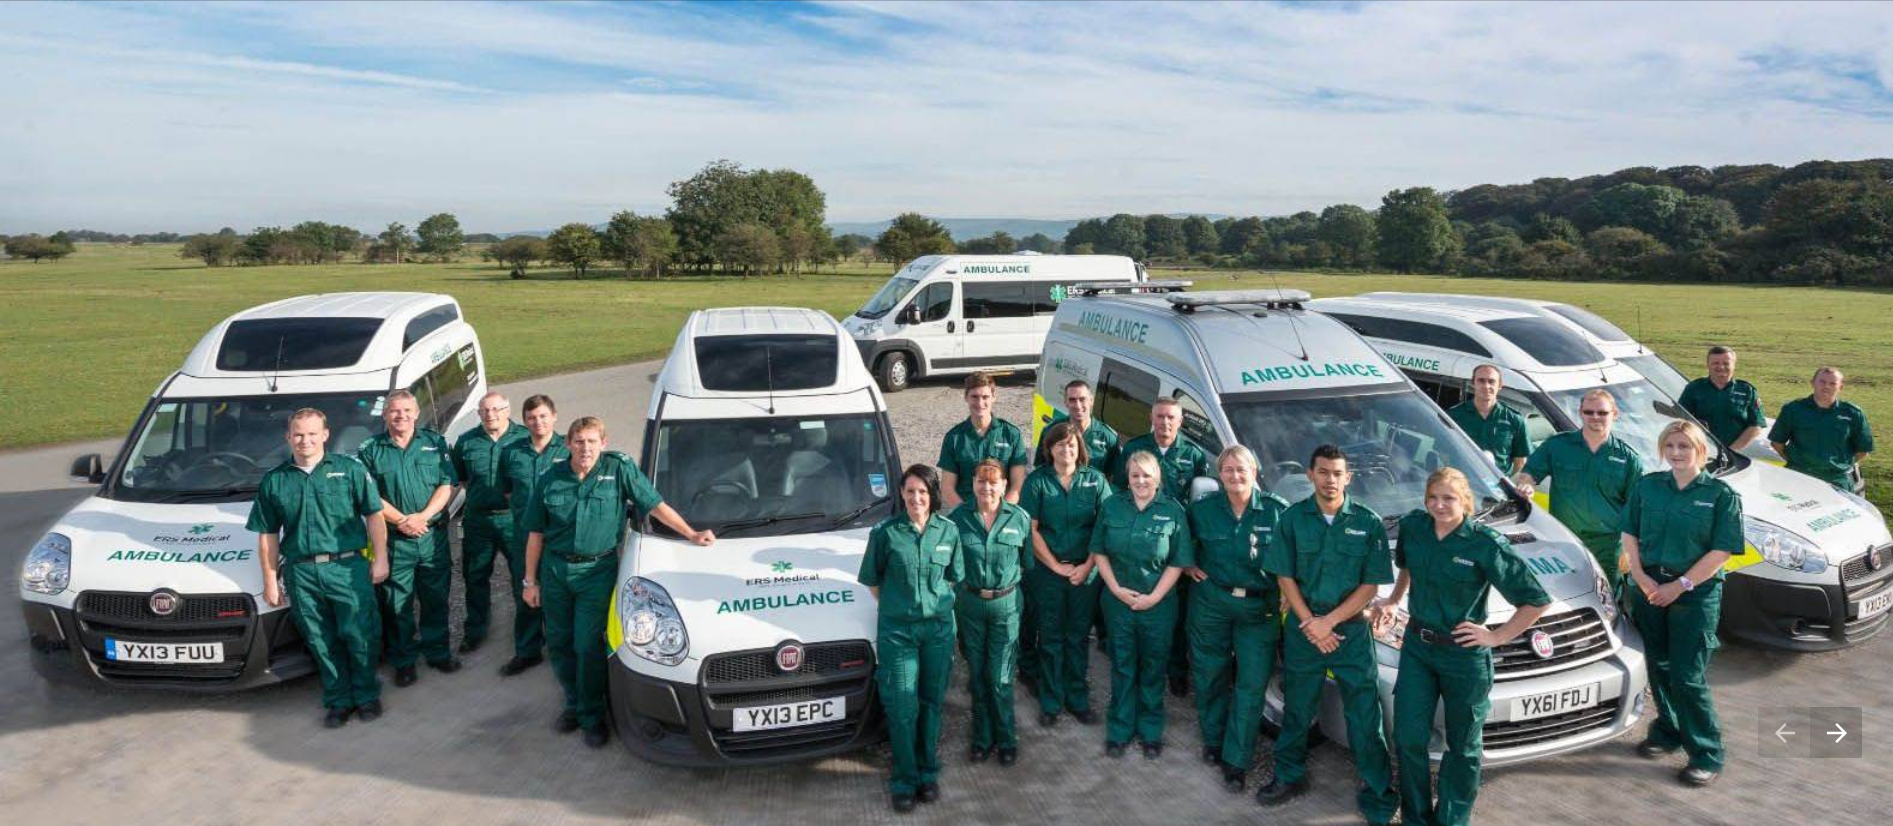 Ambulance service uses Crystal Ball SmartCam to coach drivers and keep patients safe